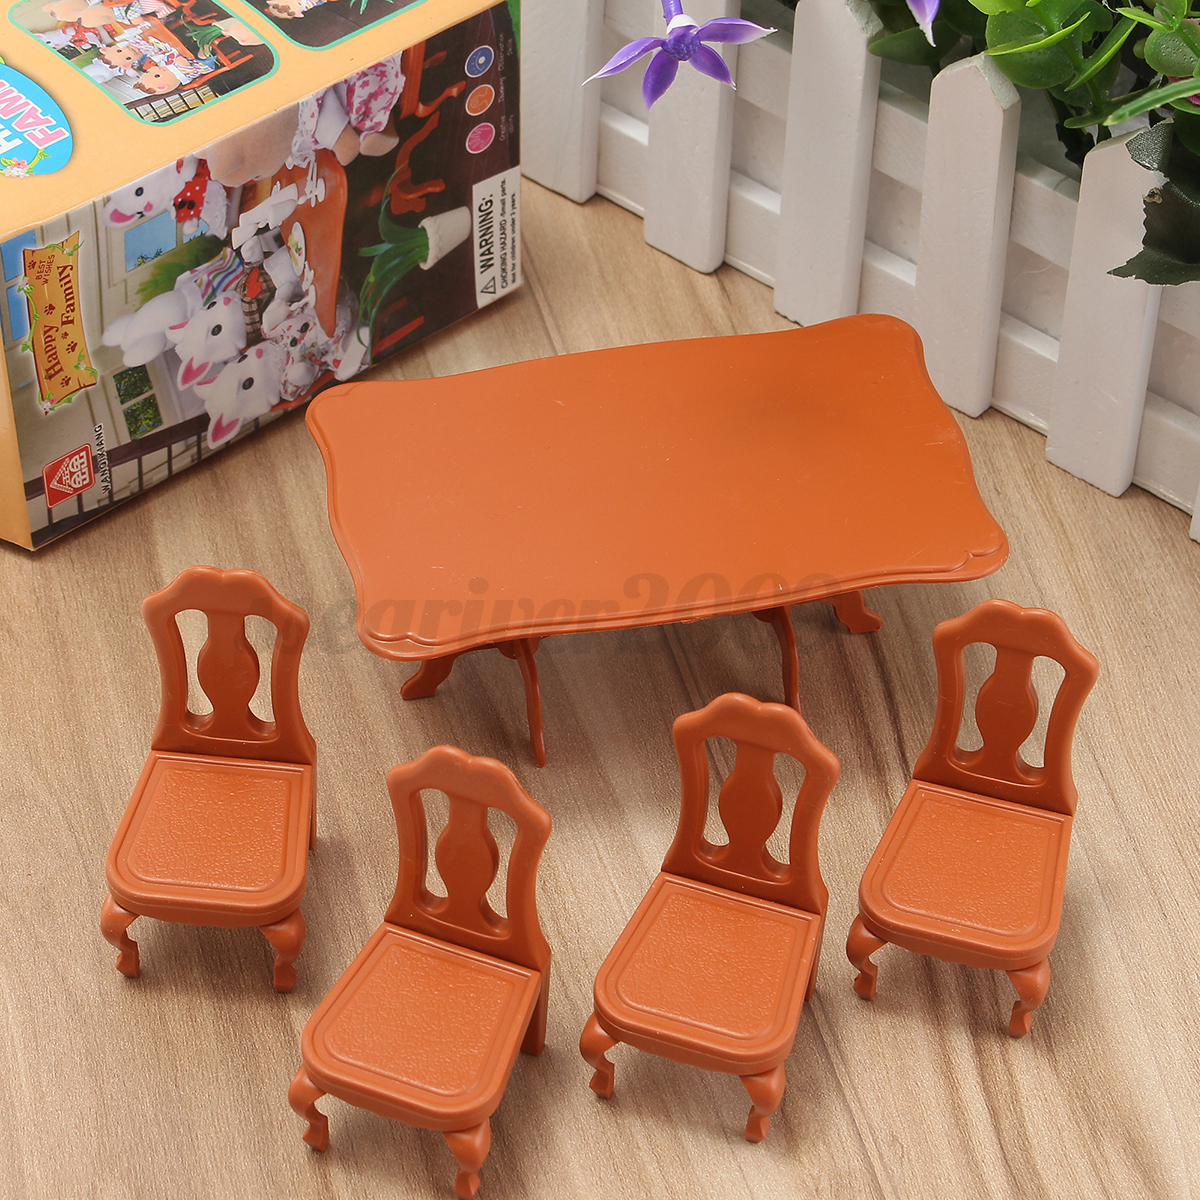 Bench Chairs Kitchen Tables And Chairs Ebay Free Kitchen: 1/12 Dollhouse Miniature Furniture Plastic Chair Table